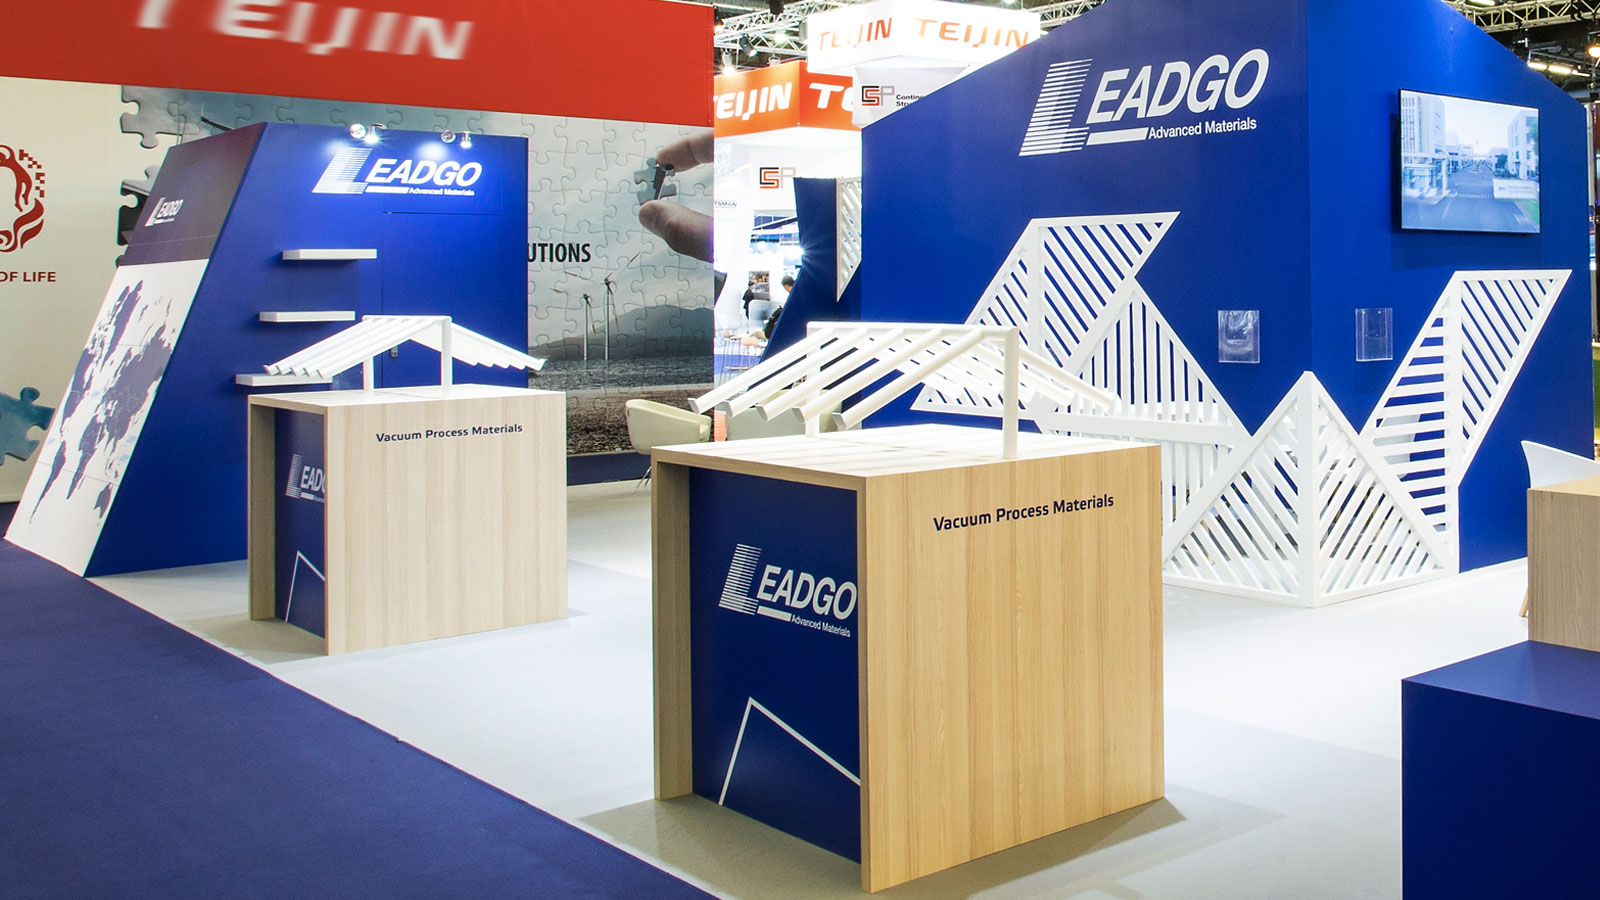 Stand-Design-Leadgo-JEC-Product-Display